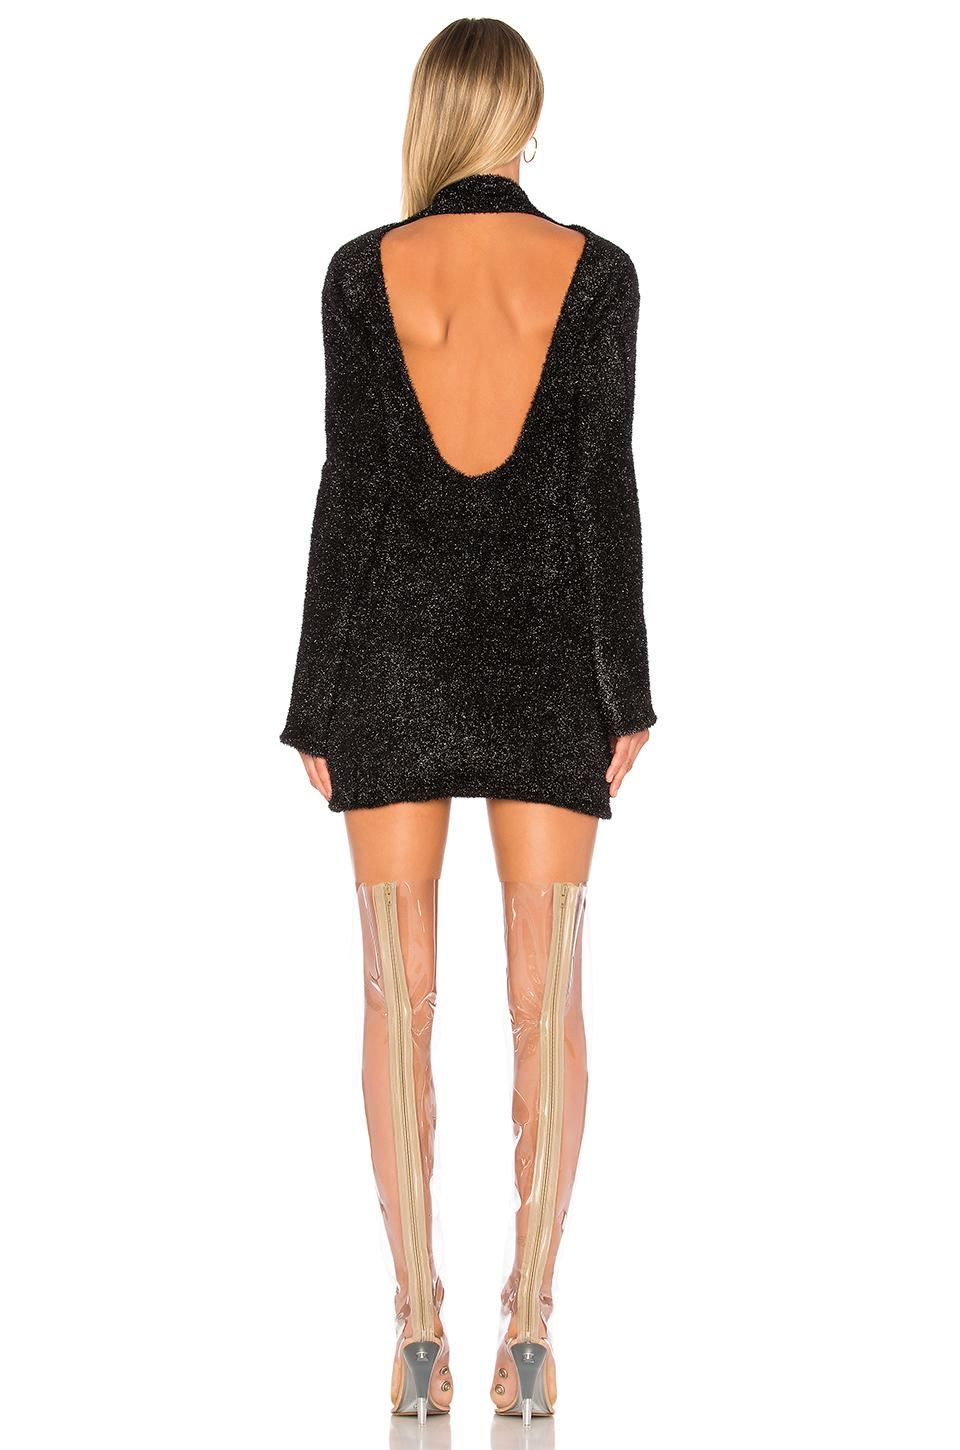 Off White C O Virgil Abloh Synthetic Sexy Knit Dress In